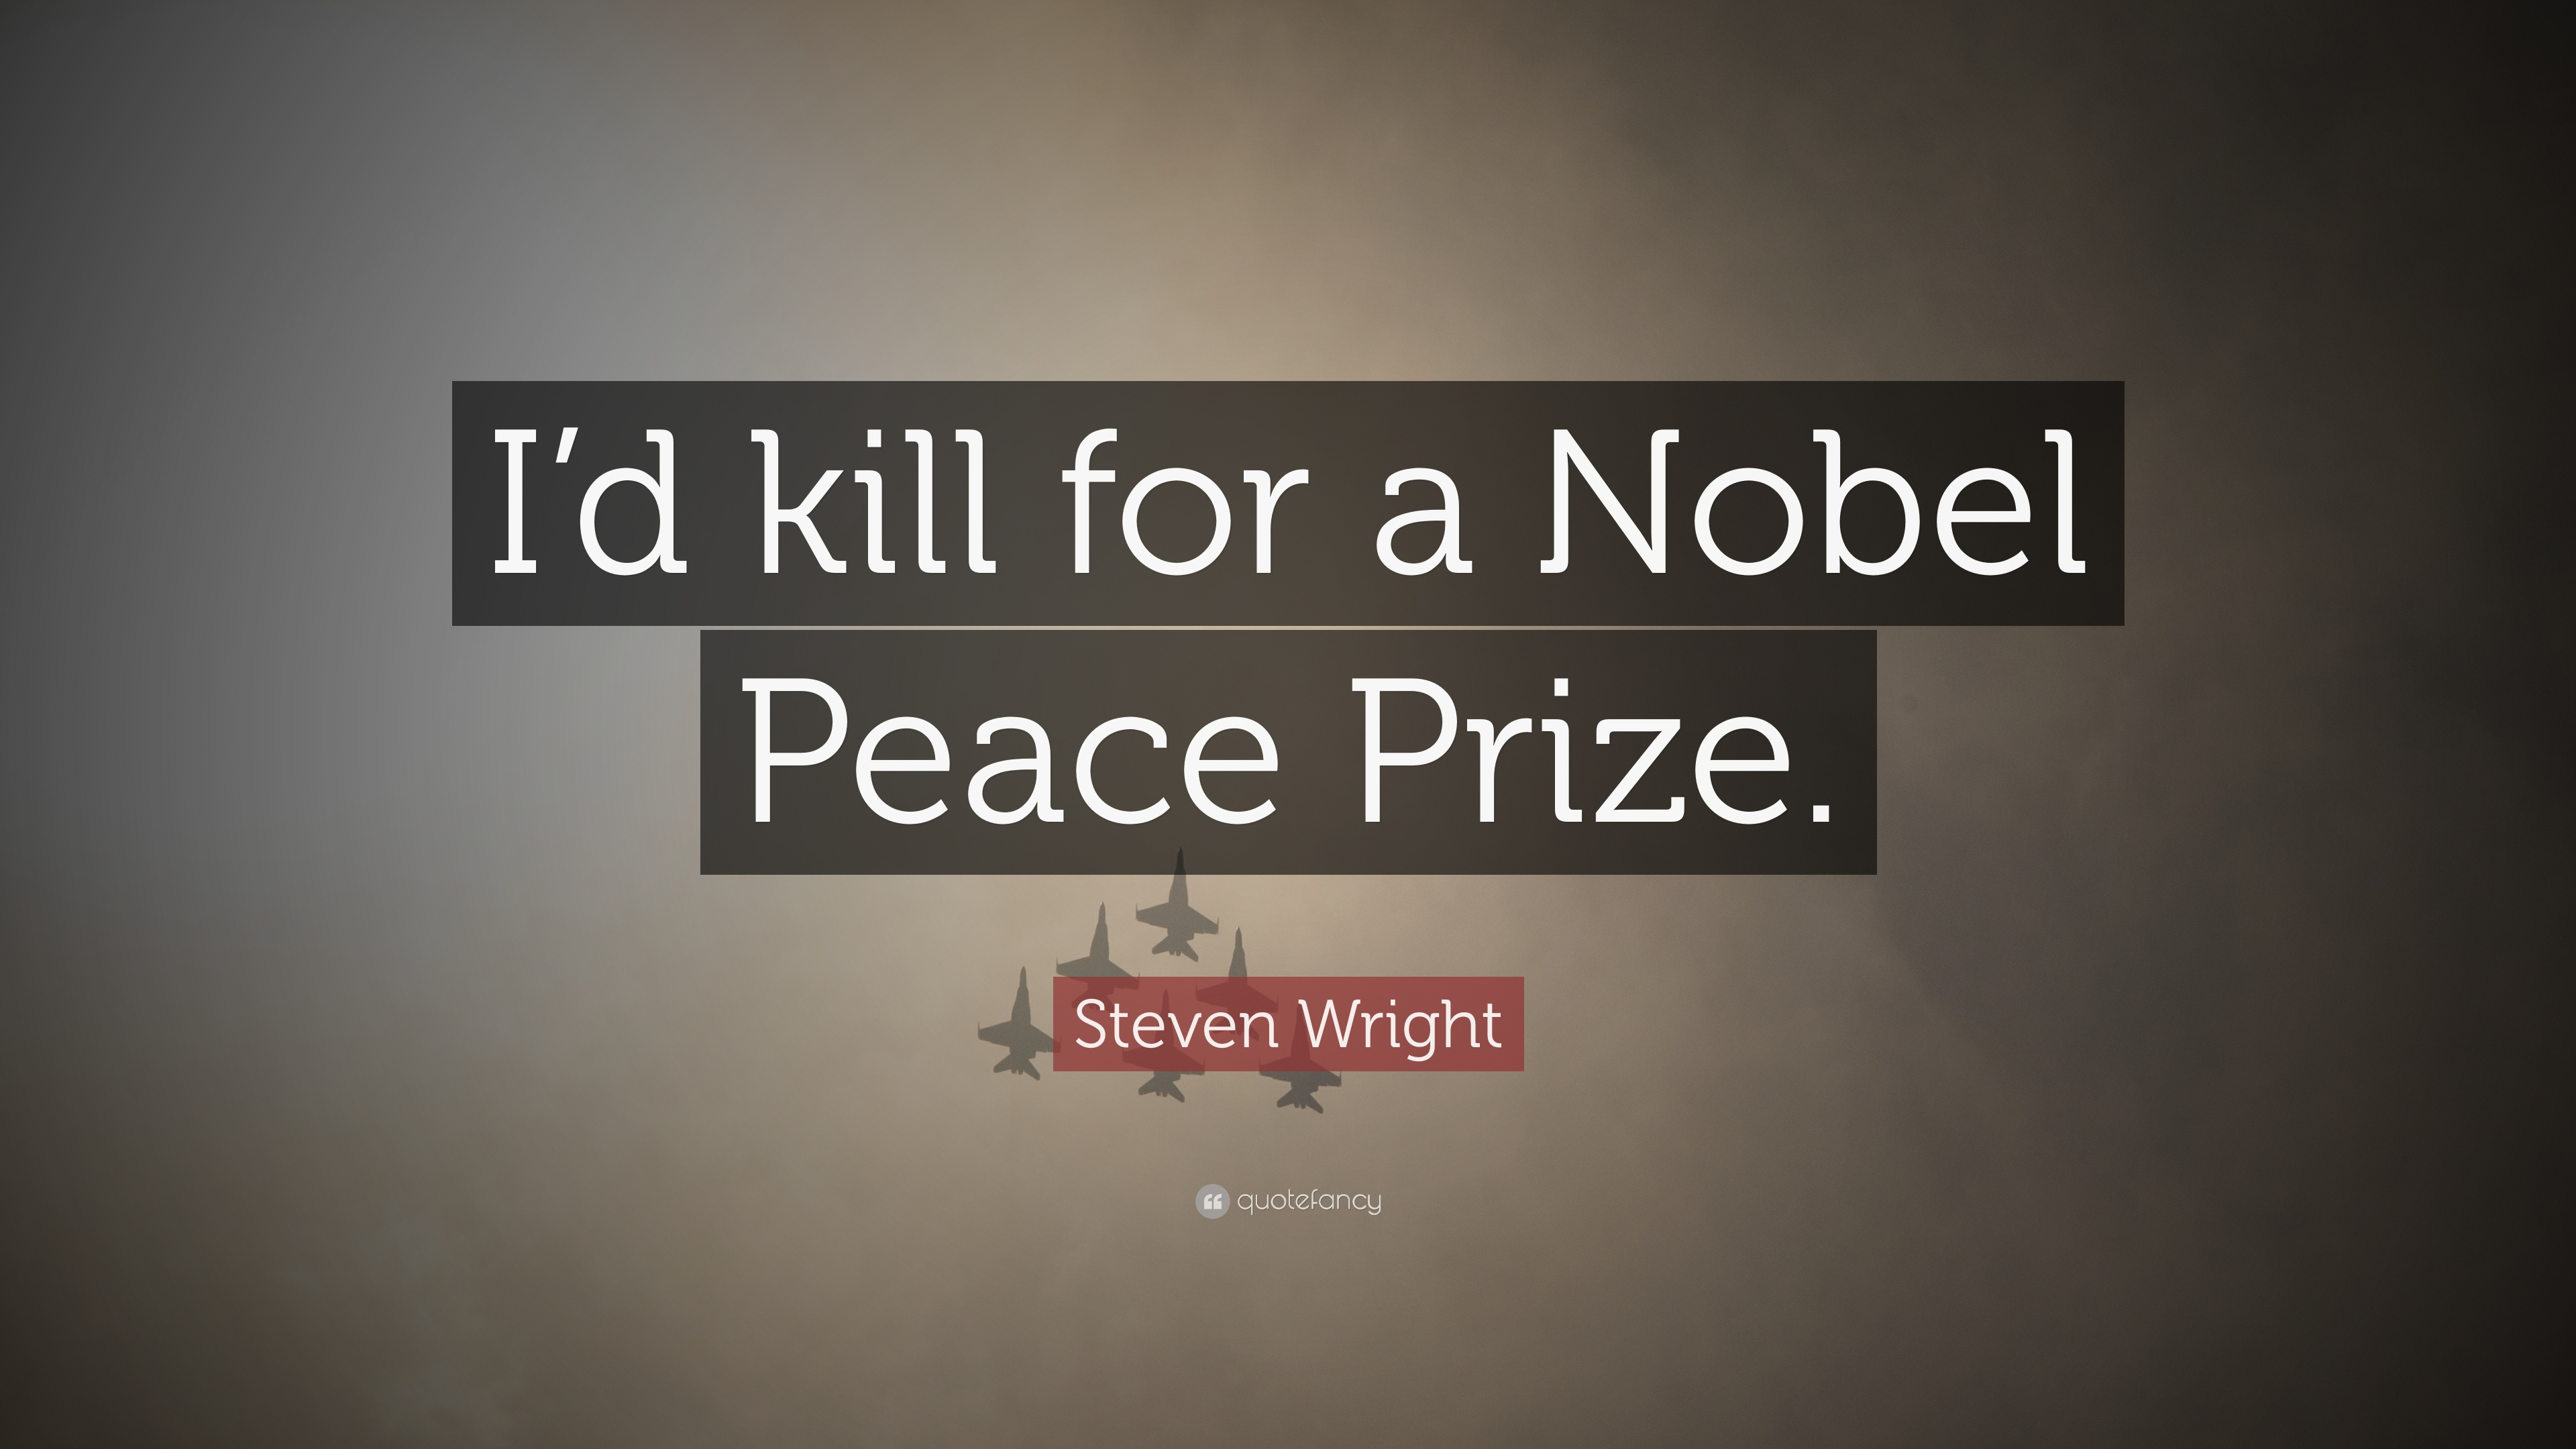 Funny Quotes: U201cIu0027d Kill For A Nobel Peace Prize.u201d U2014